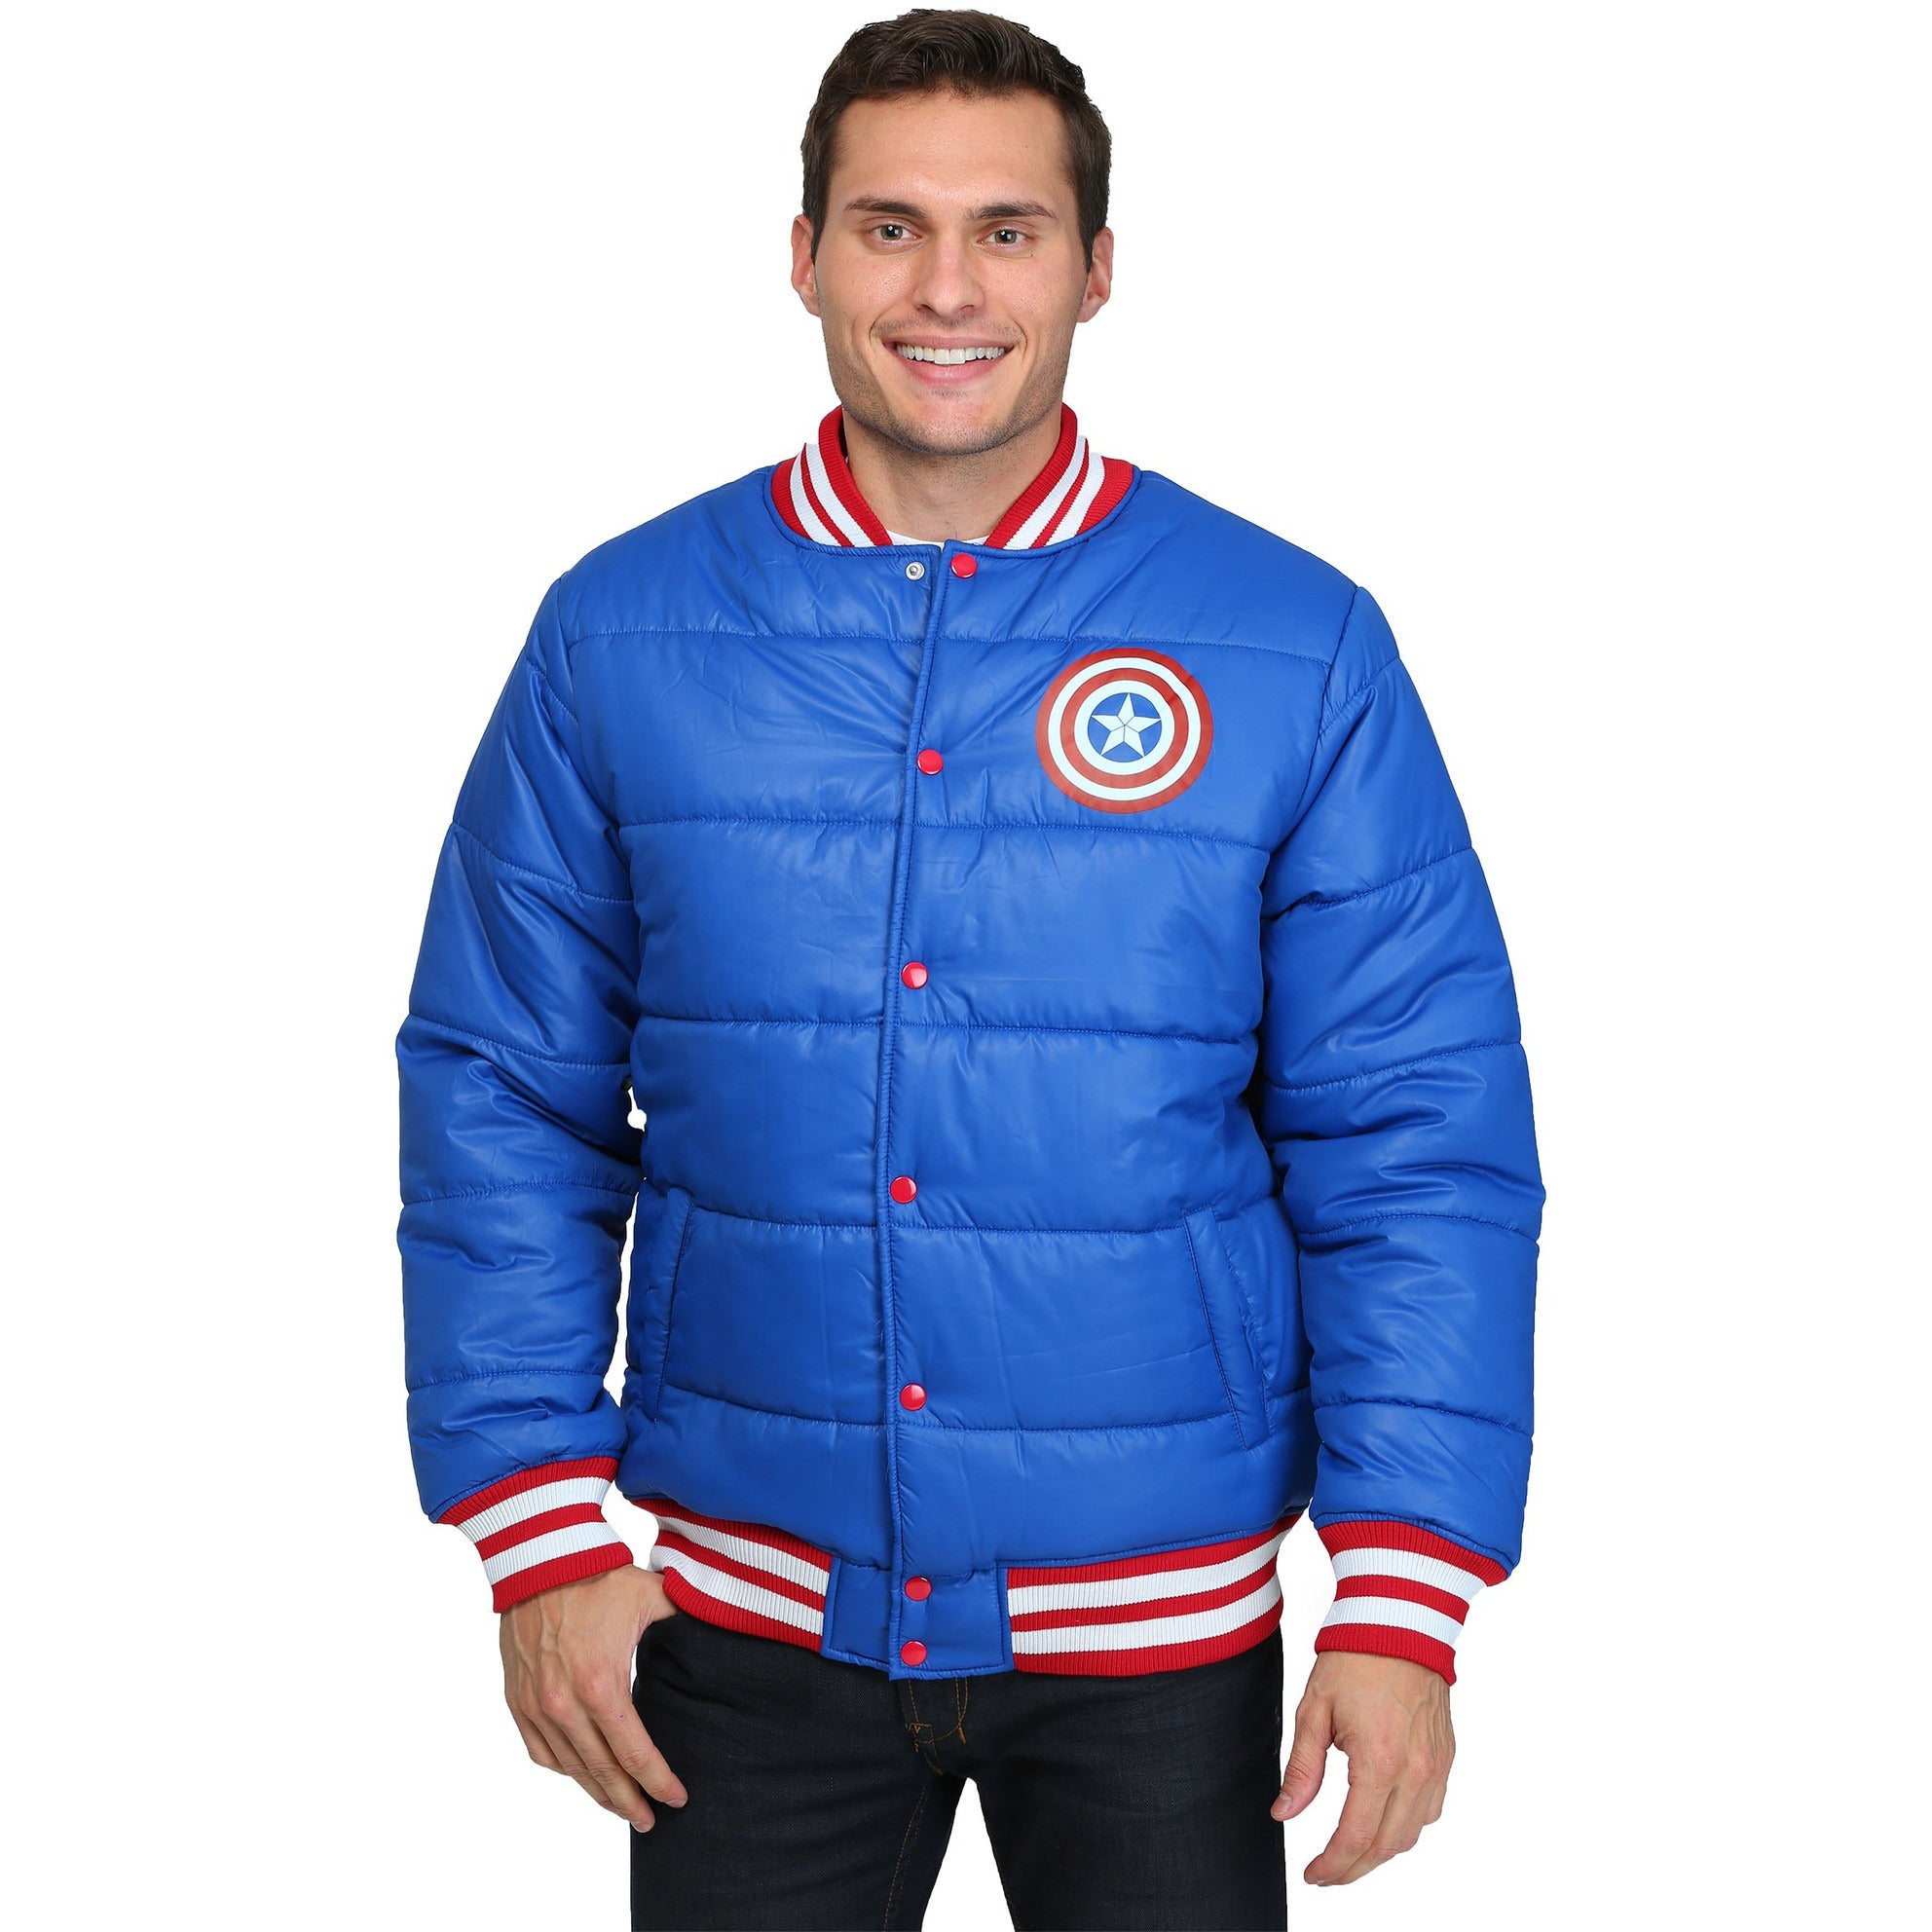 Captain America Puff Jacket Uncanny!